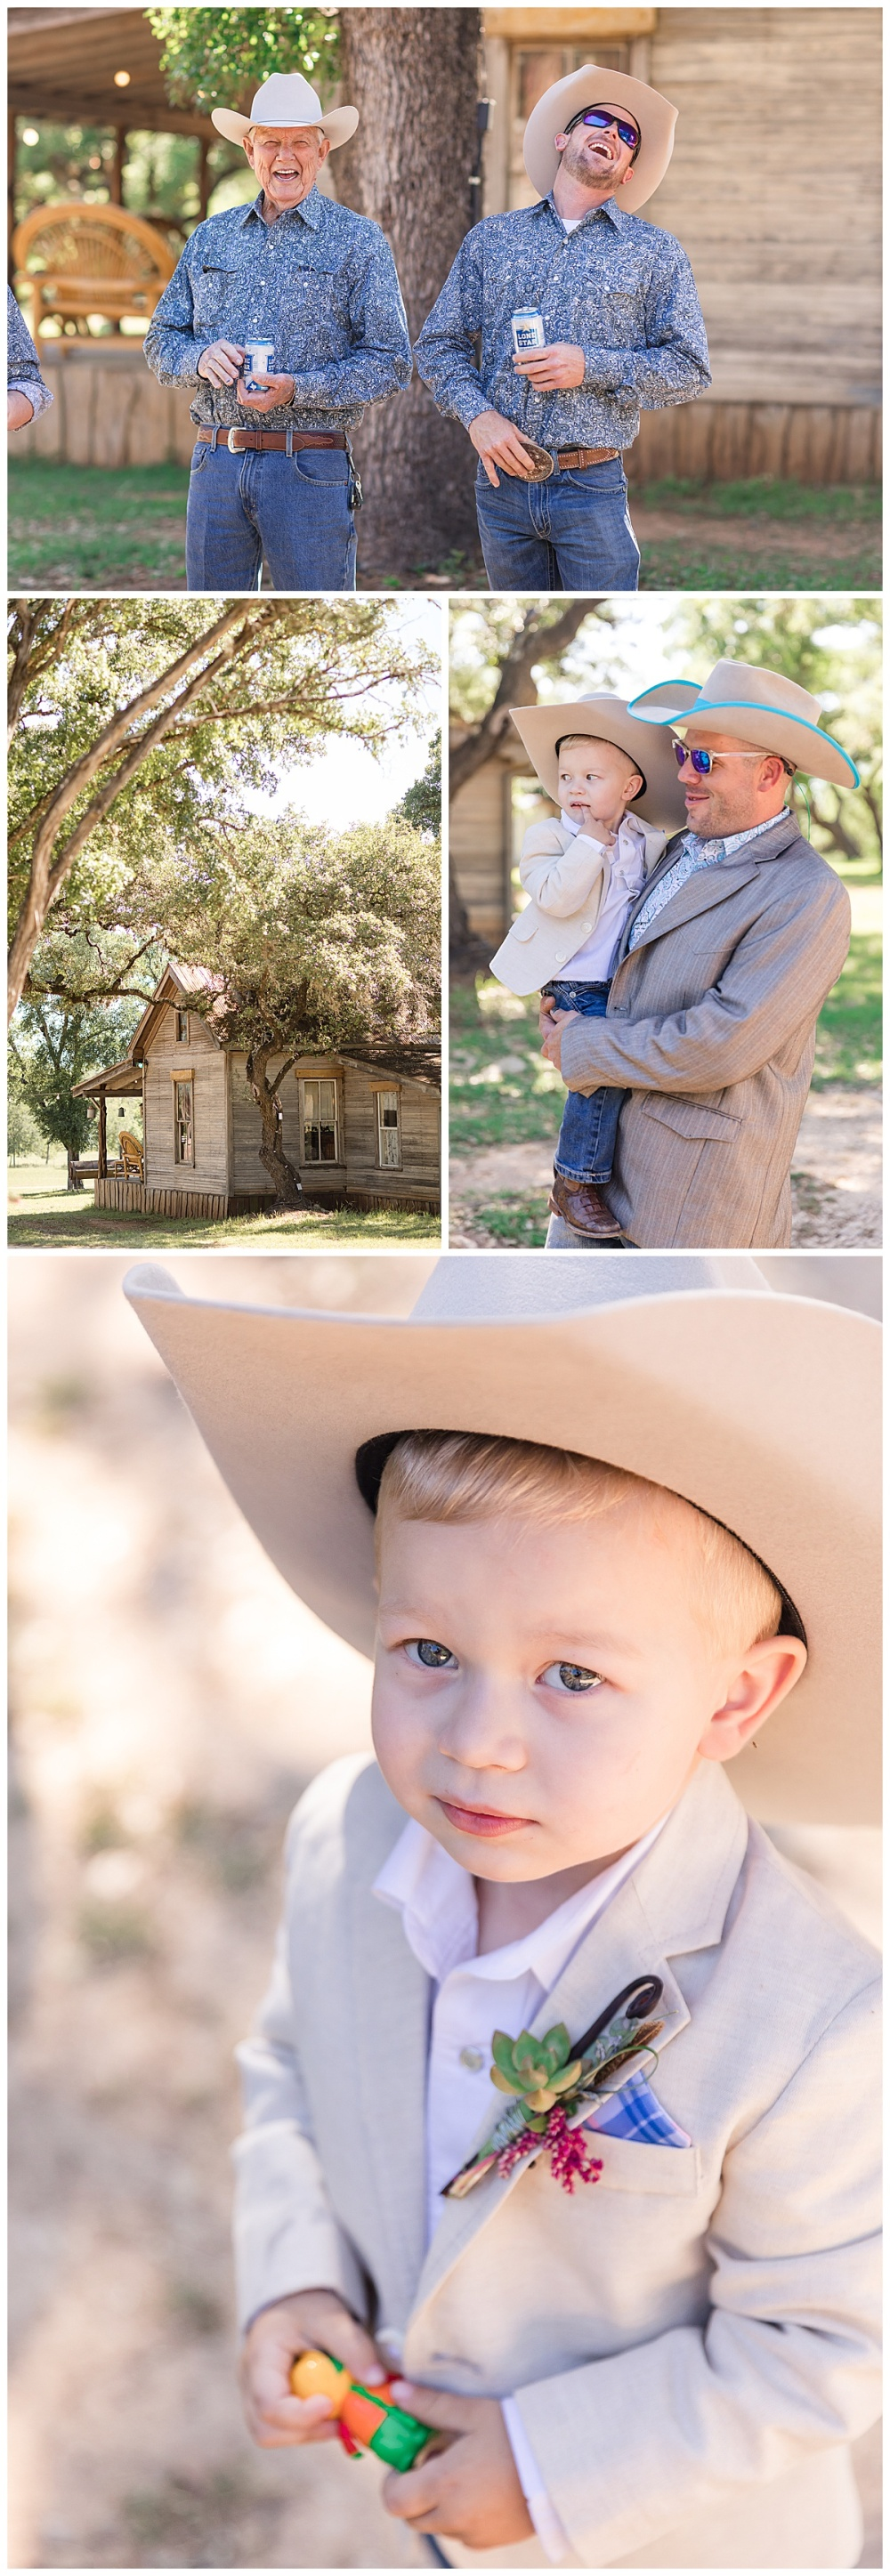 Eagle-Dancer-Ranch-Boerne-Texas-Wedding-Party-Barn-Carly-Barton-Photography_0018.jpg